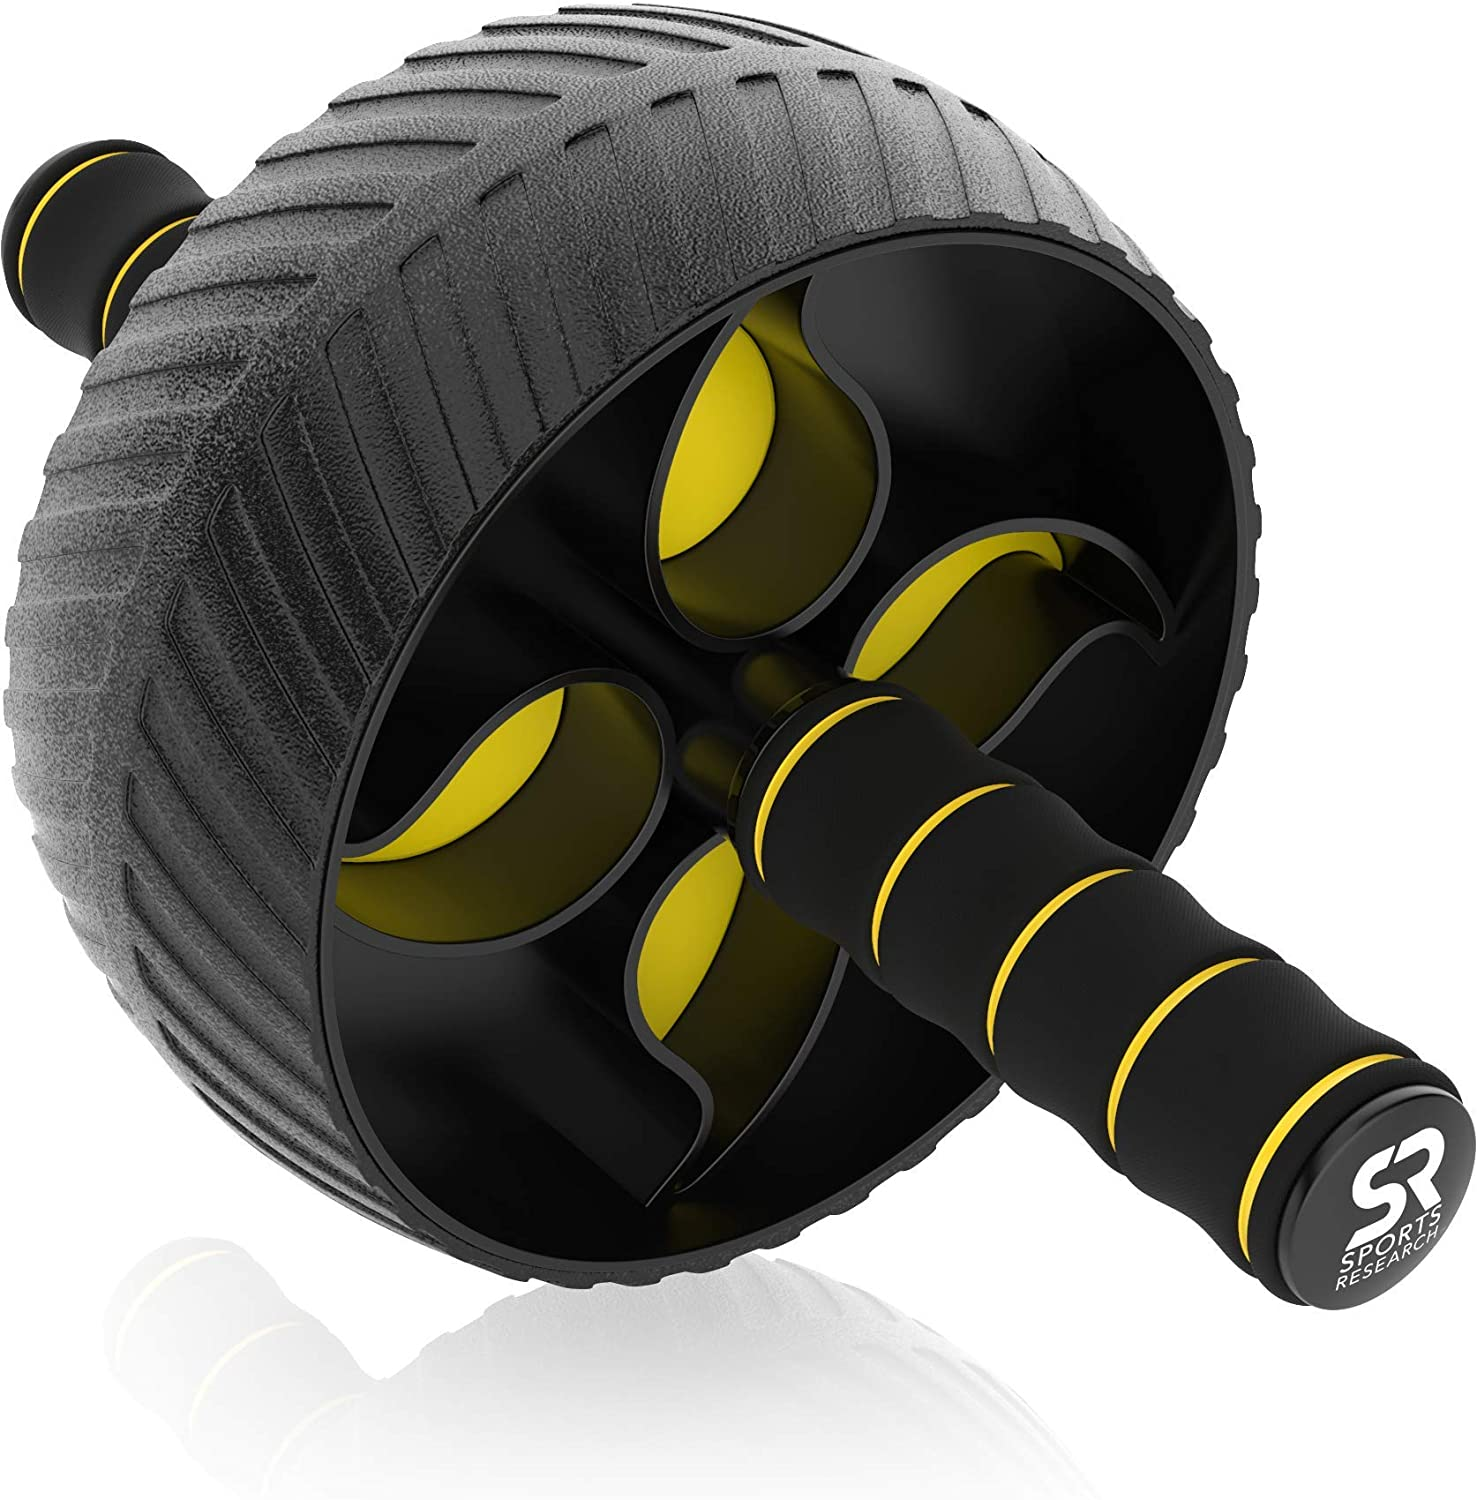 Sports Research Ab Wheel Roller